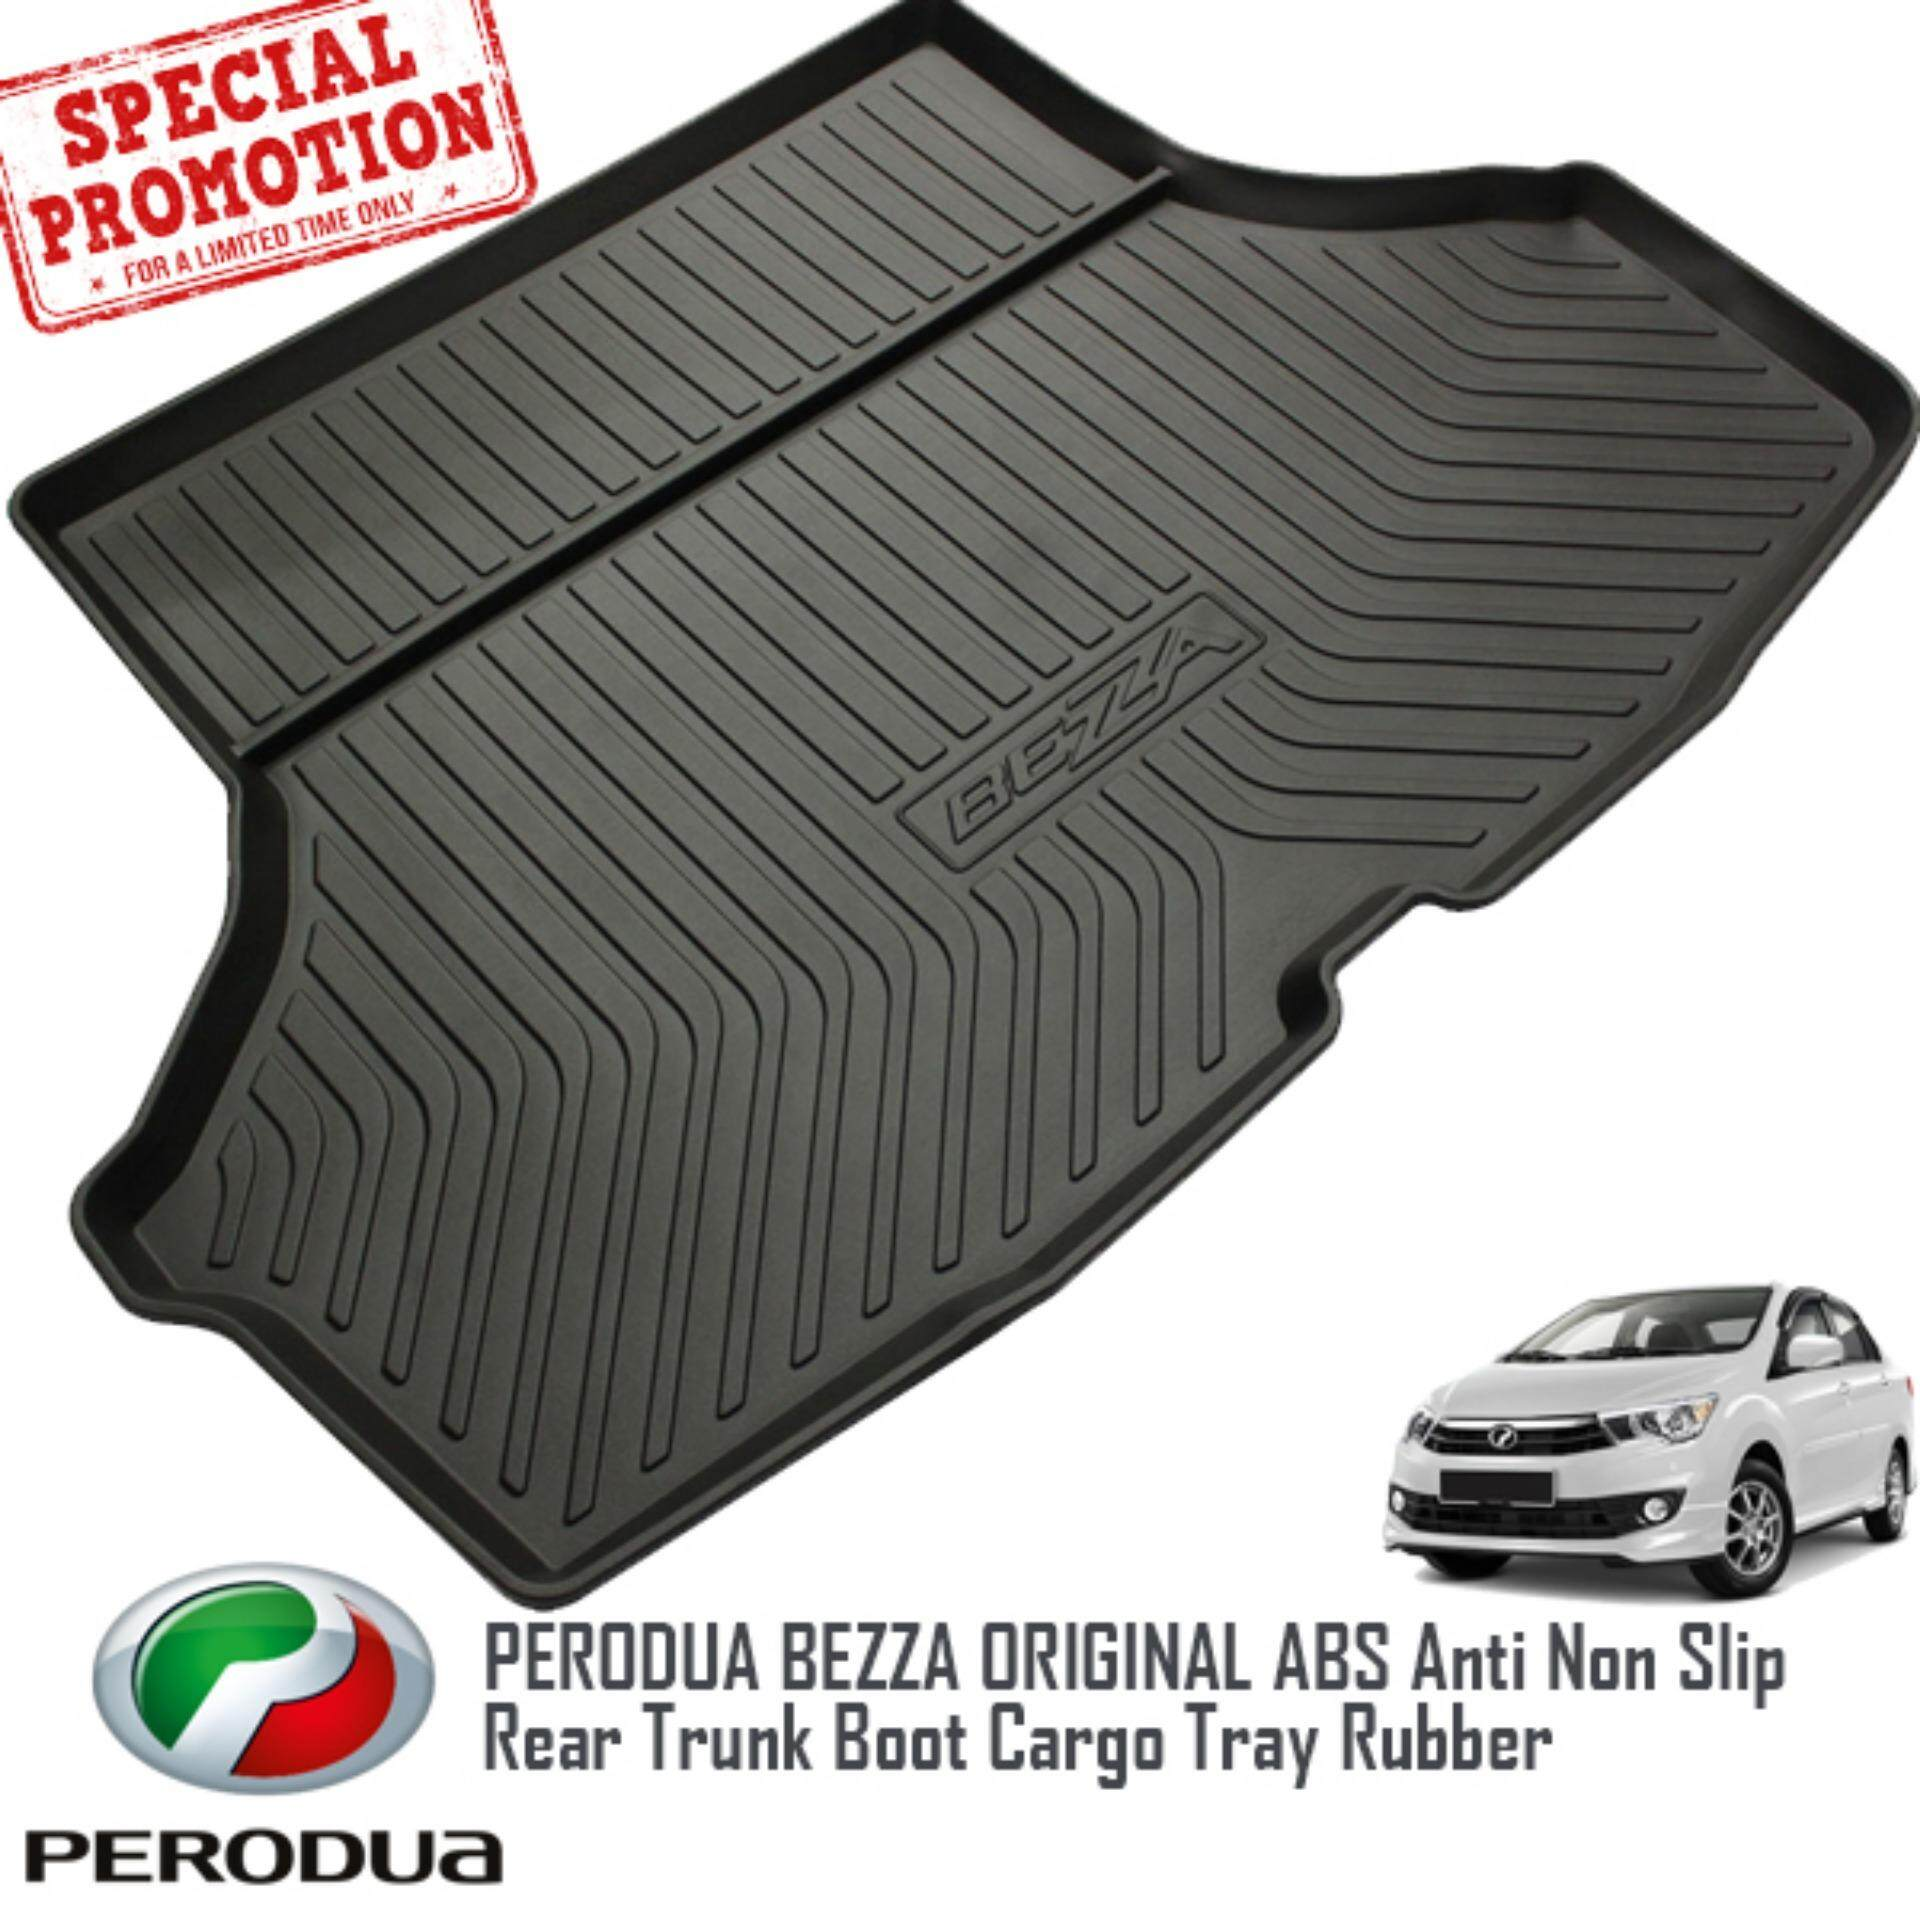 PERODUA BEZZA ORIGINAL ABS Rubber Anti Non Slip Rear Trunk Boot Cargo Tray